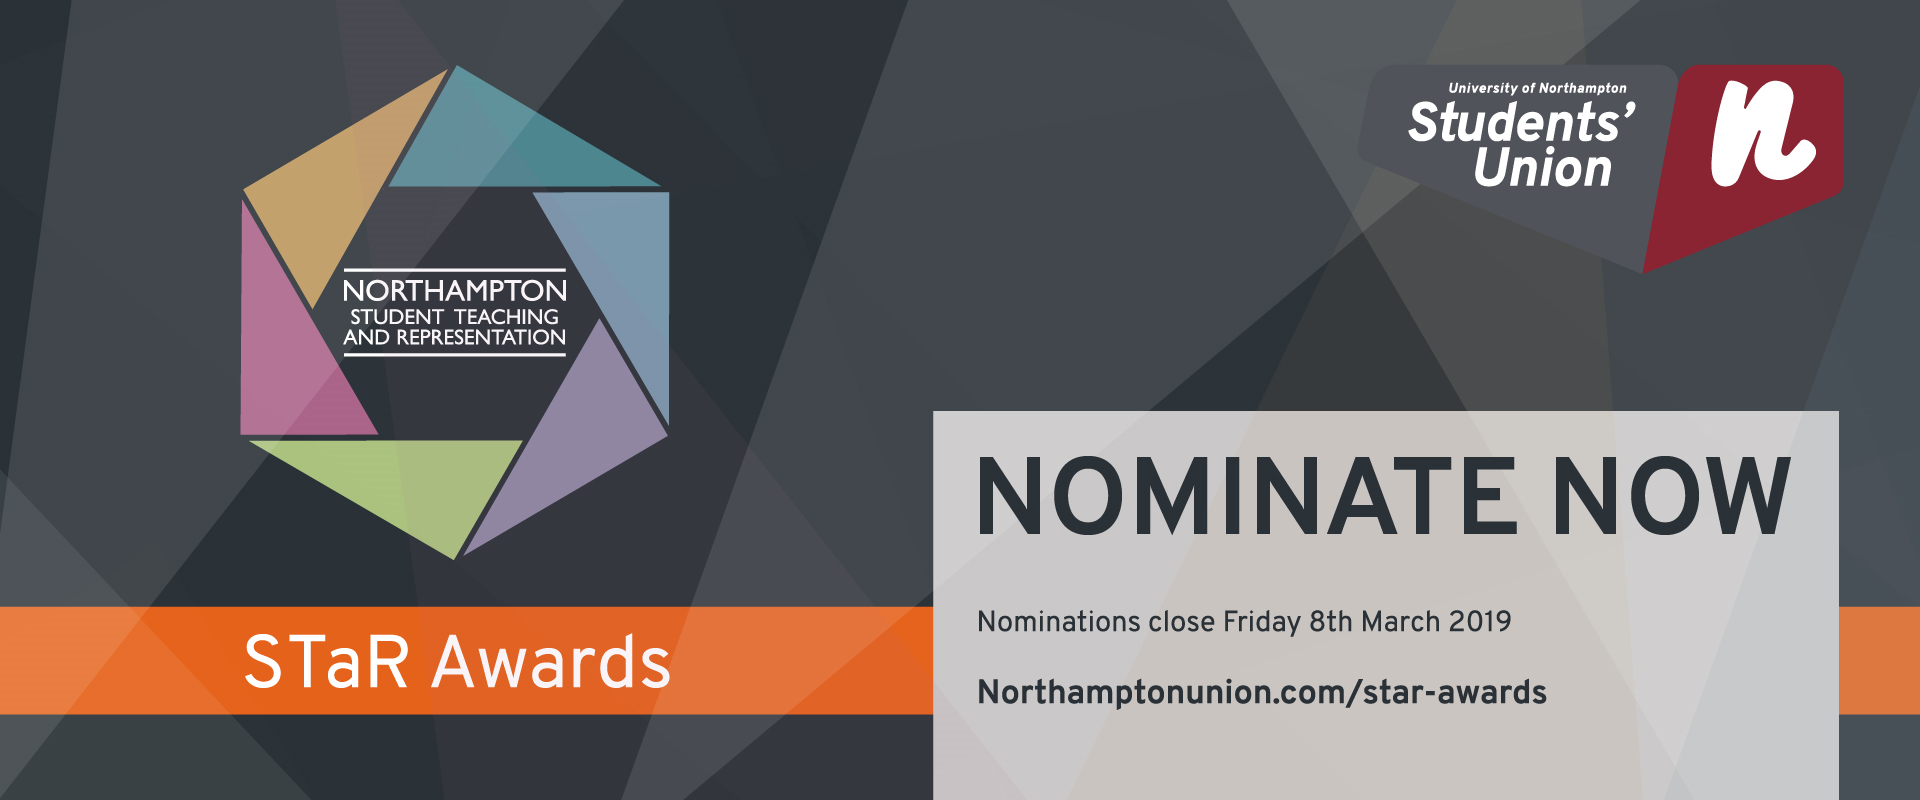 Nominate now for StaR Awards!